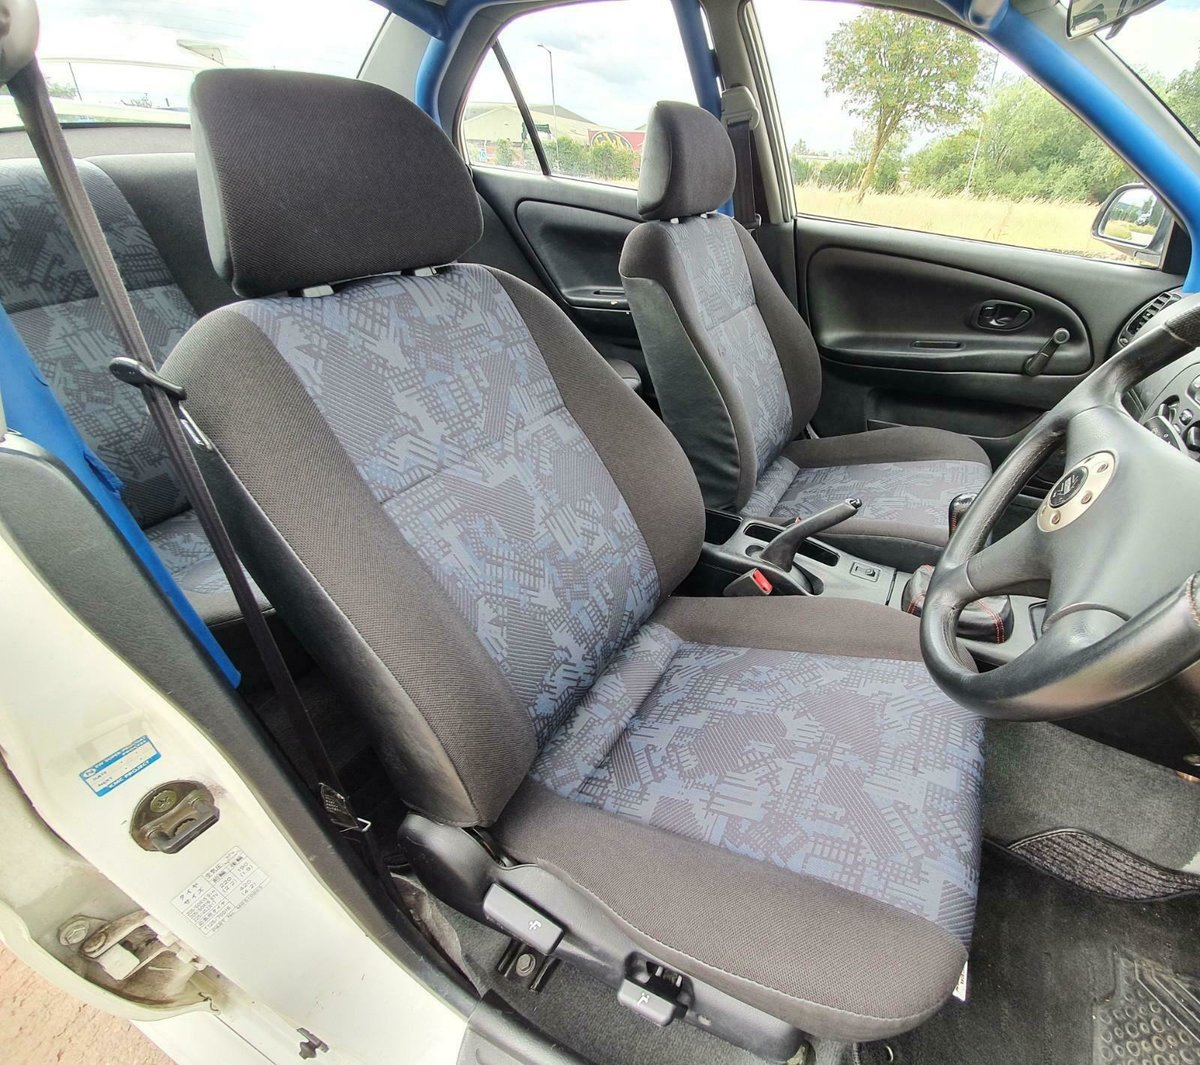 2000 Mitsubishi lancer evo 6.5 tme rs For Sale (picture 4 of 6)